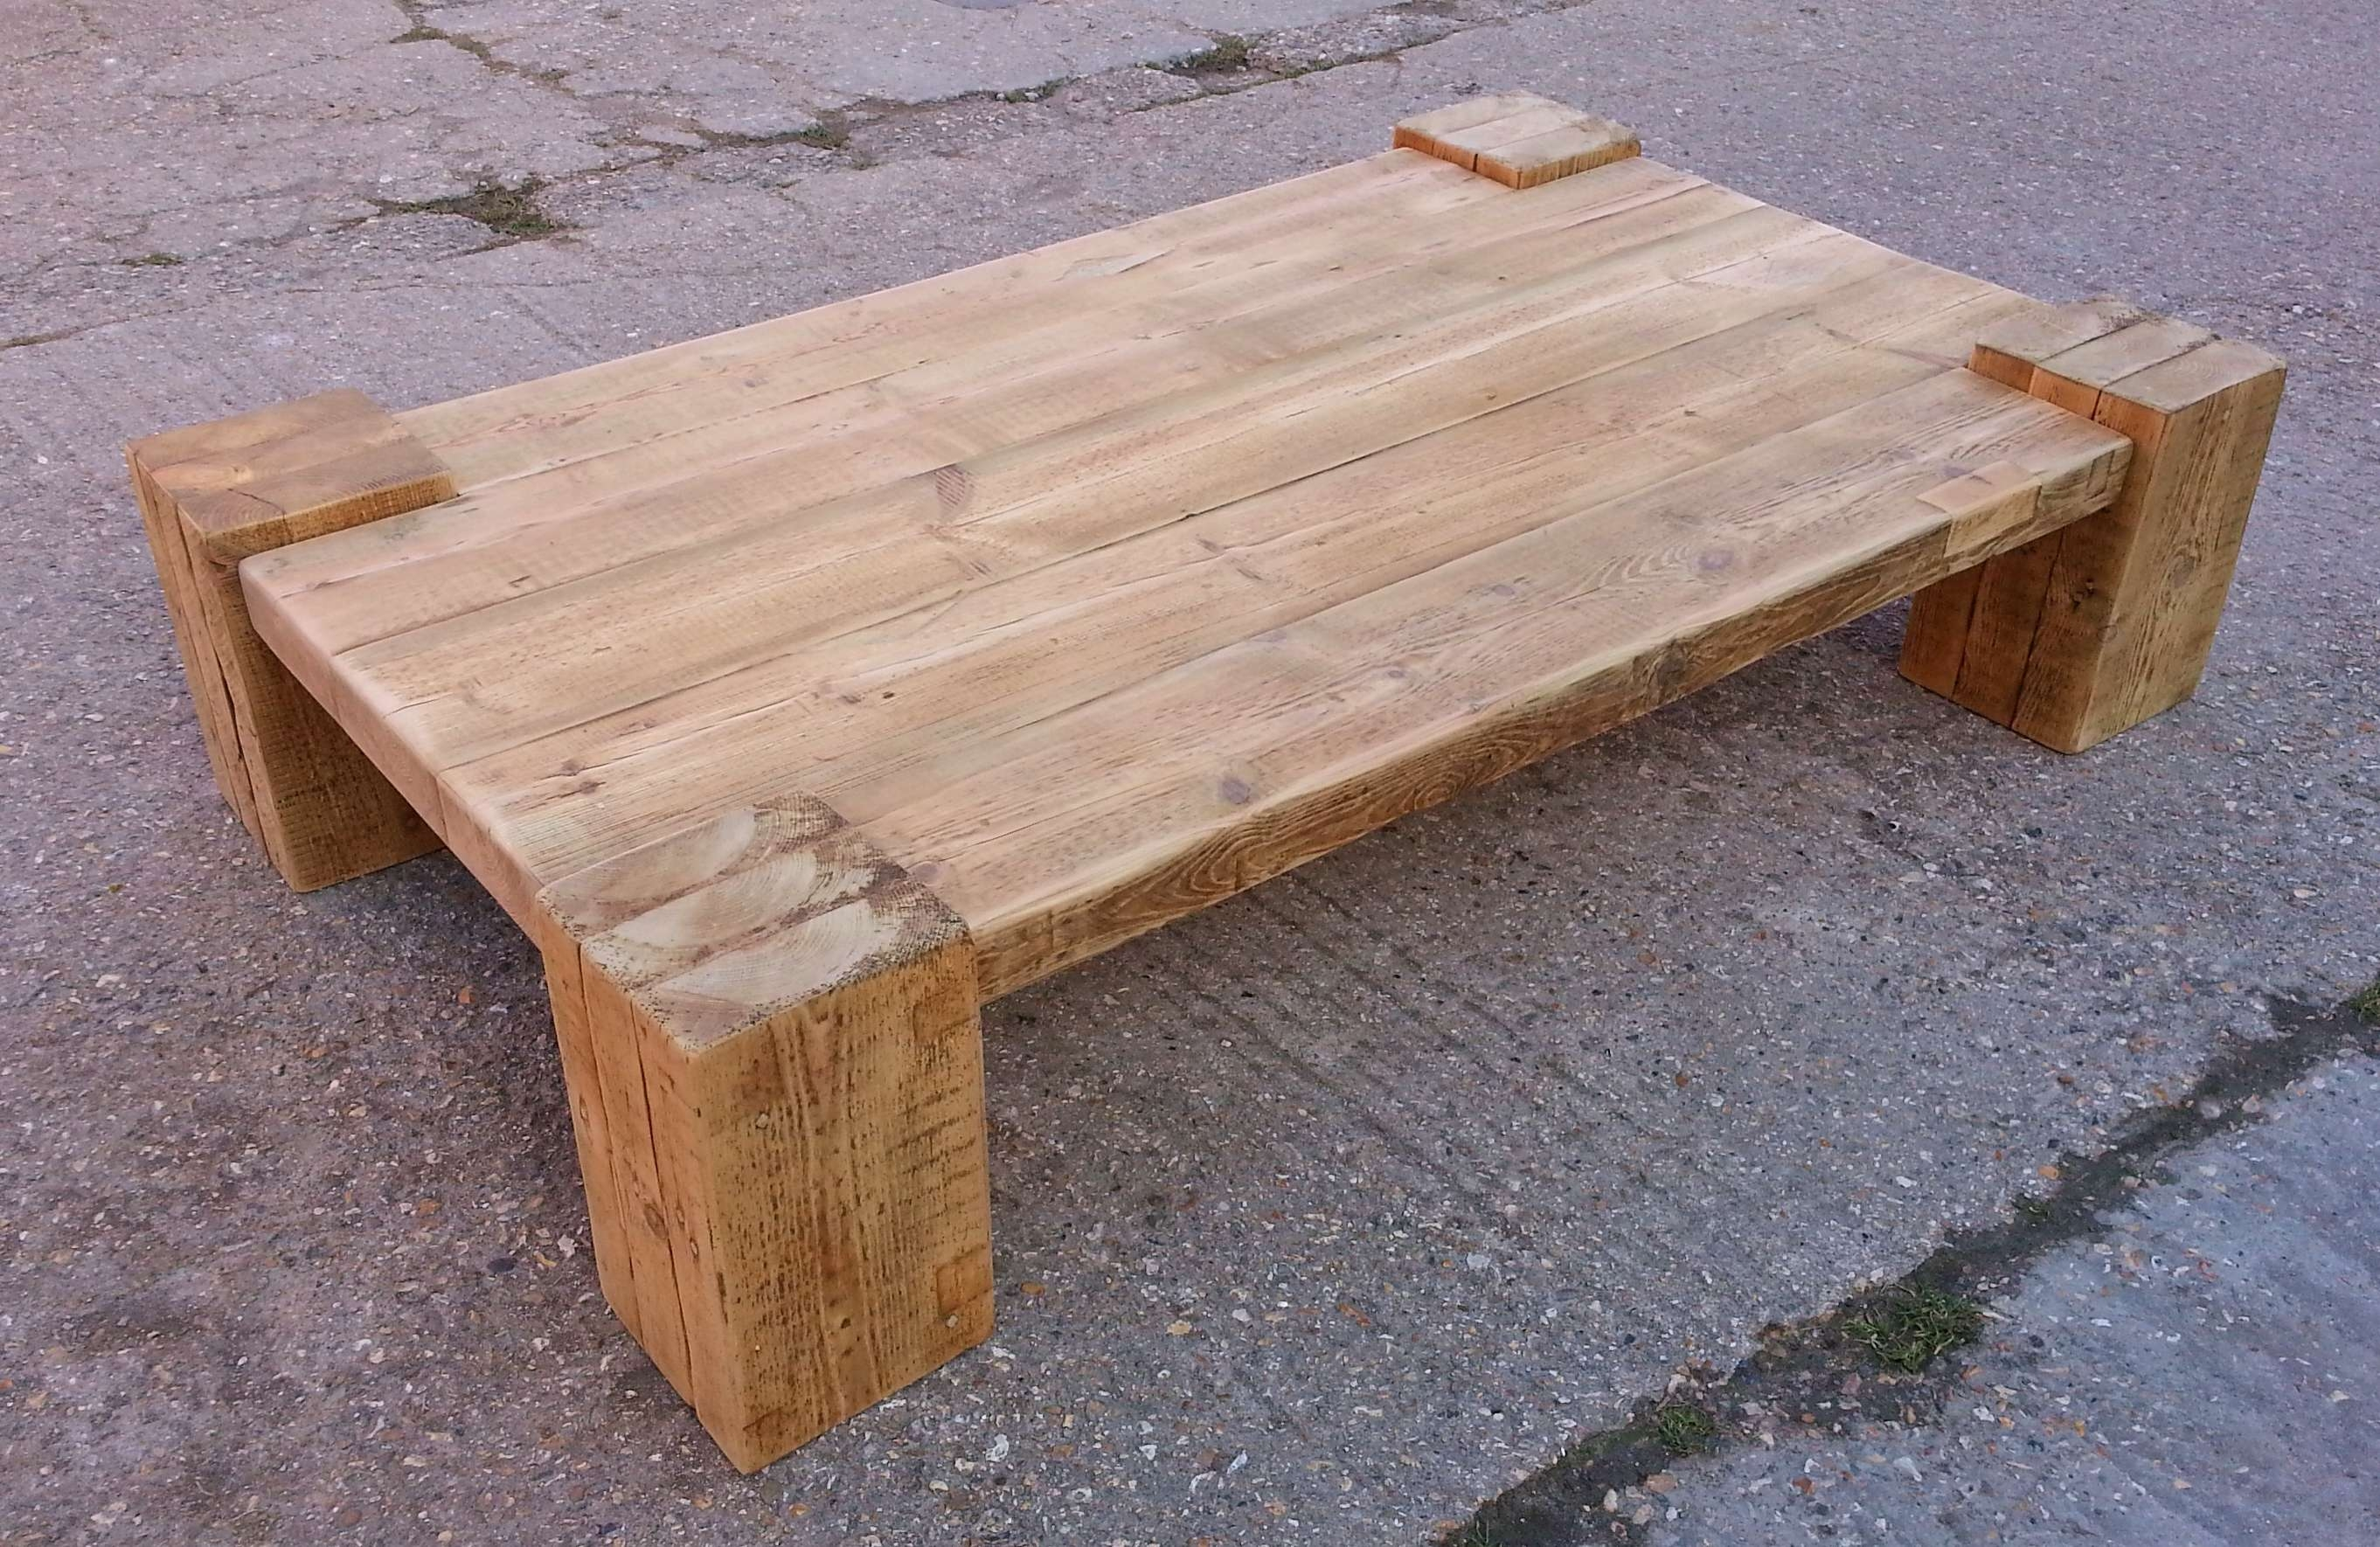 Favorite Chunky Coffee Tables Intended For Best Chunky Coffee Table With Drawers – 2X4 Coffee Table Plans (View 4 of 20)